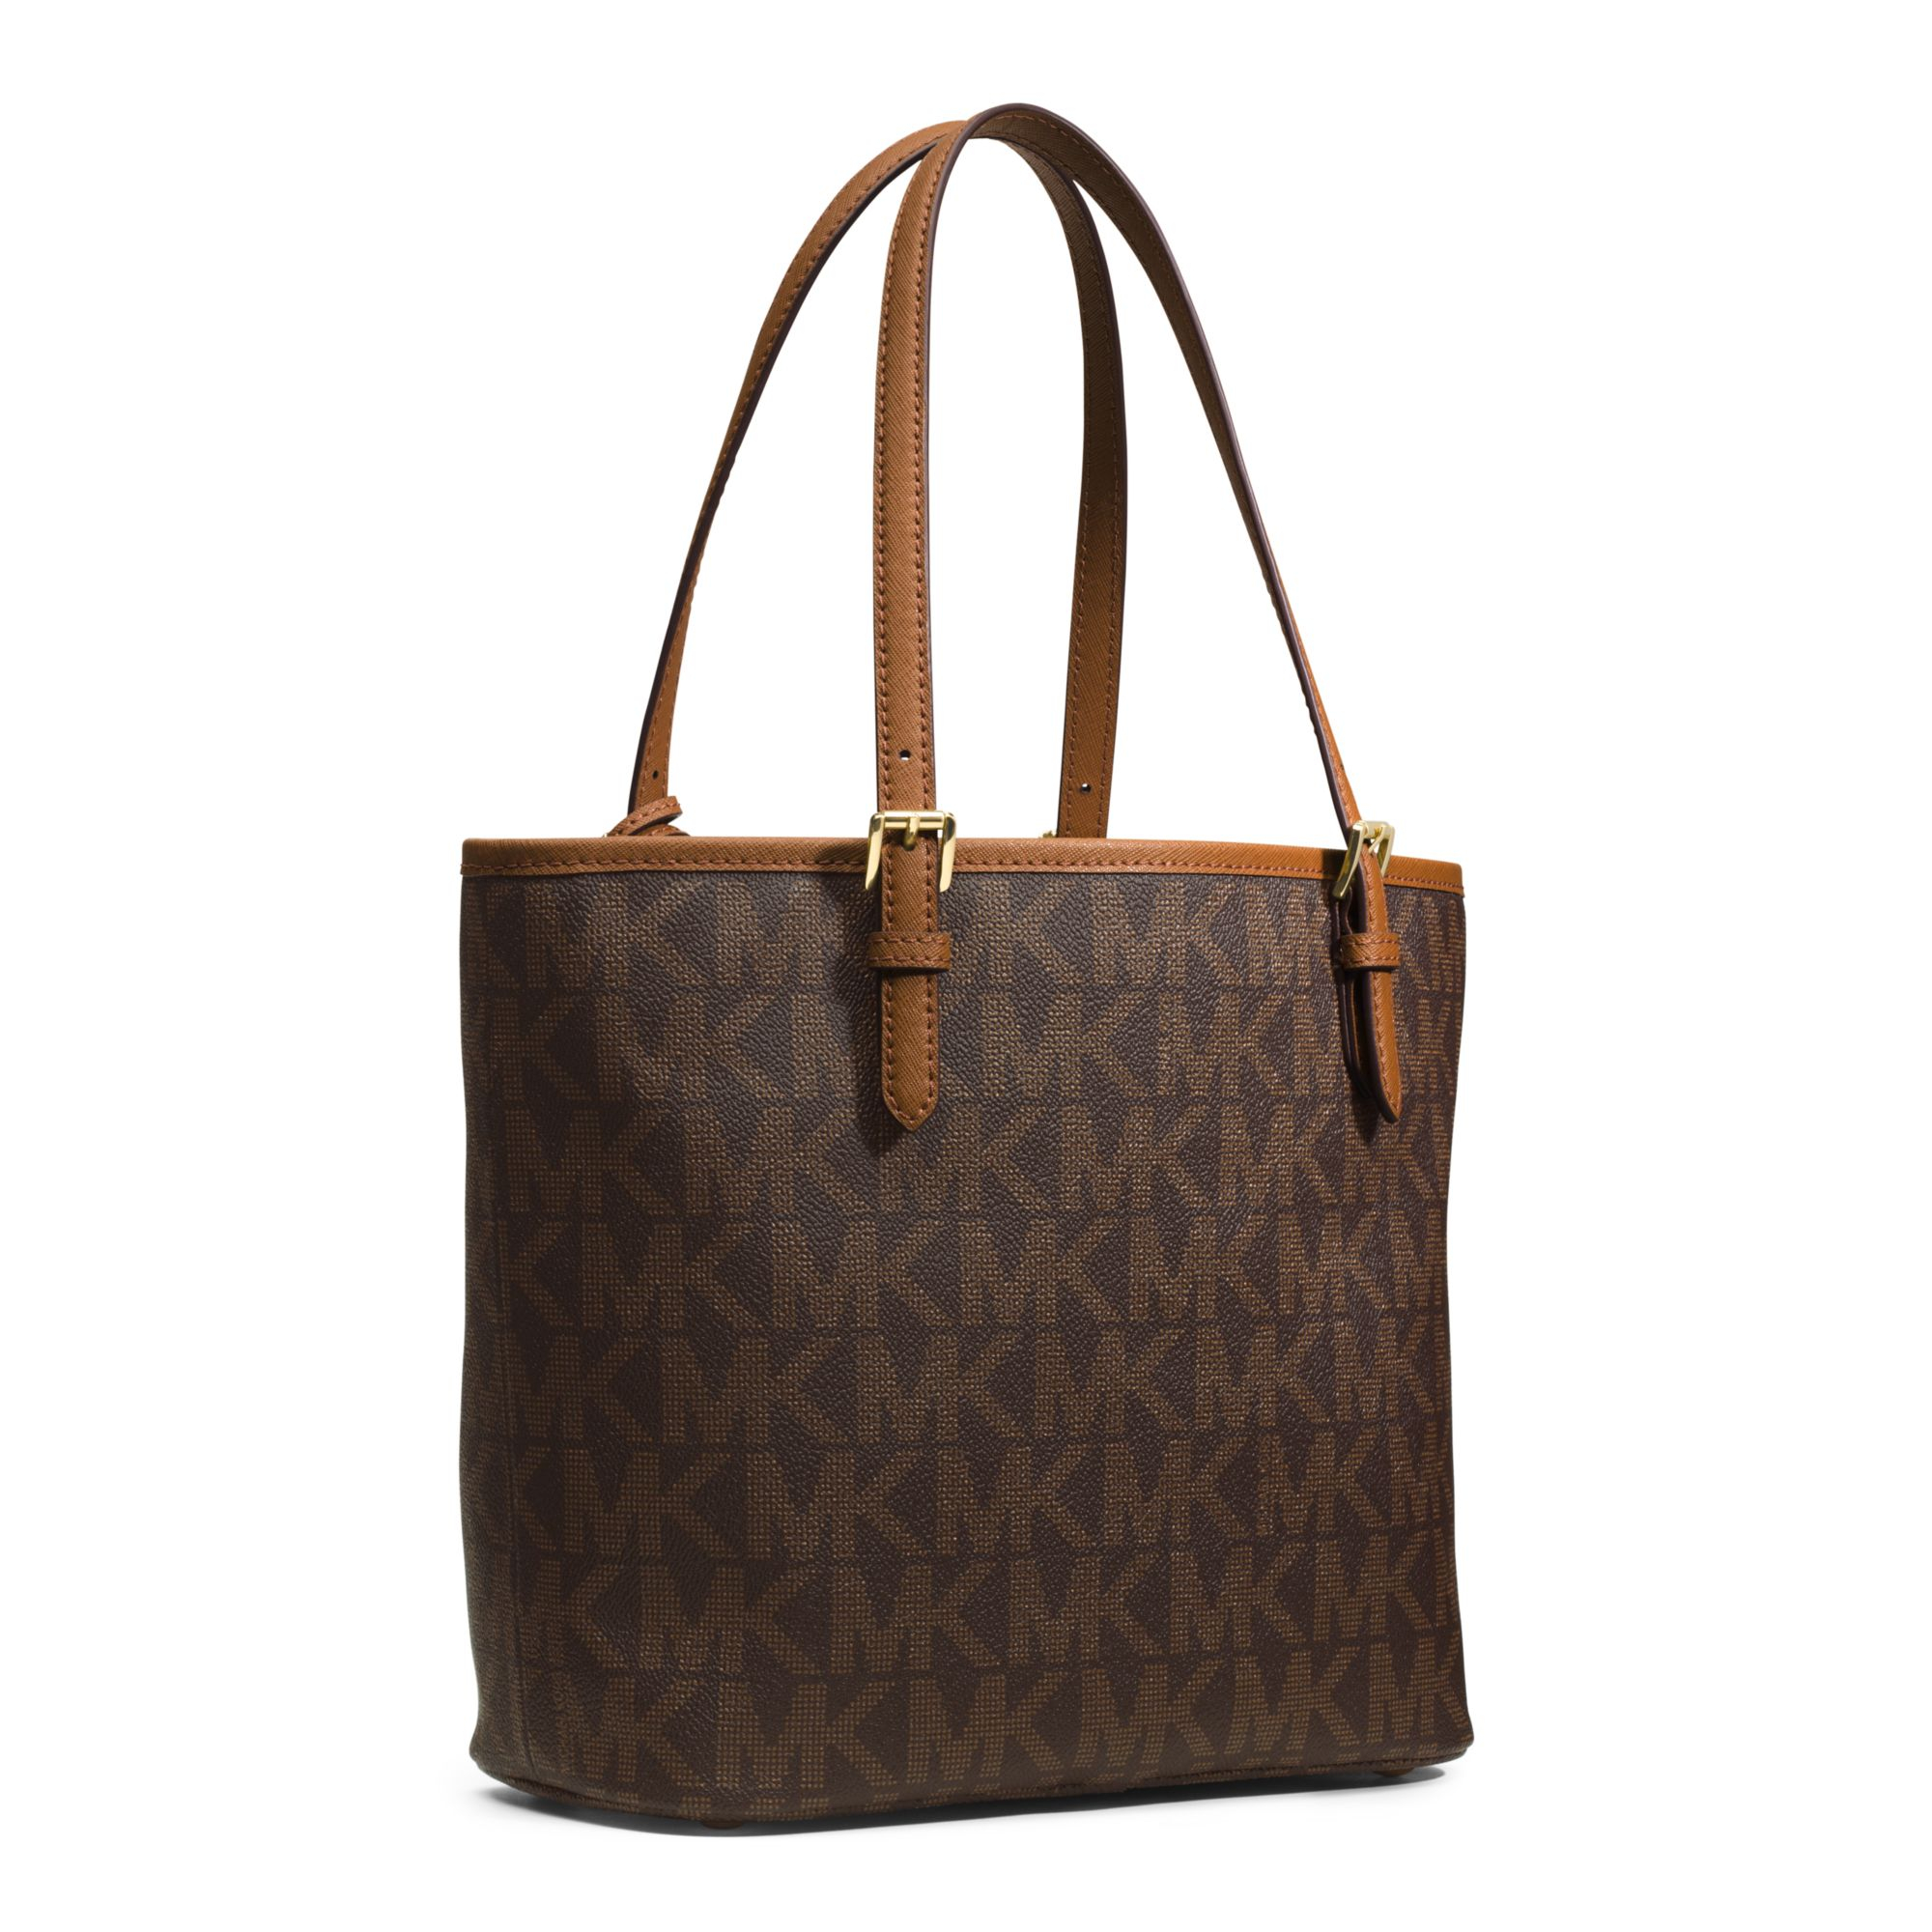 6adee0531d65 Michael Kors Jet Set Travel Medium Logo Tote in Brown - Lyst